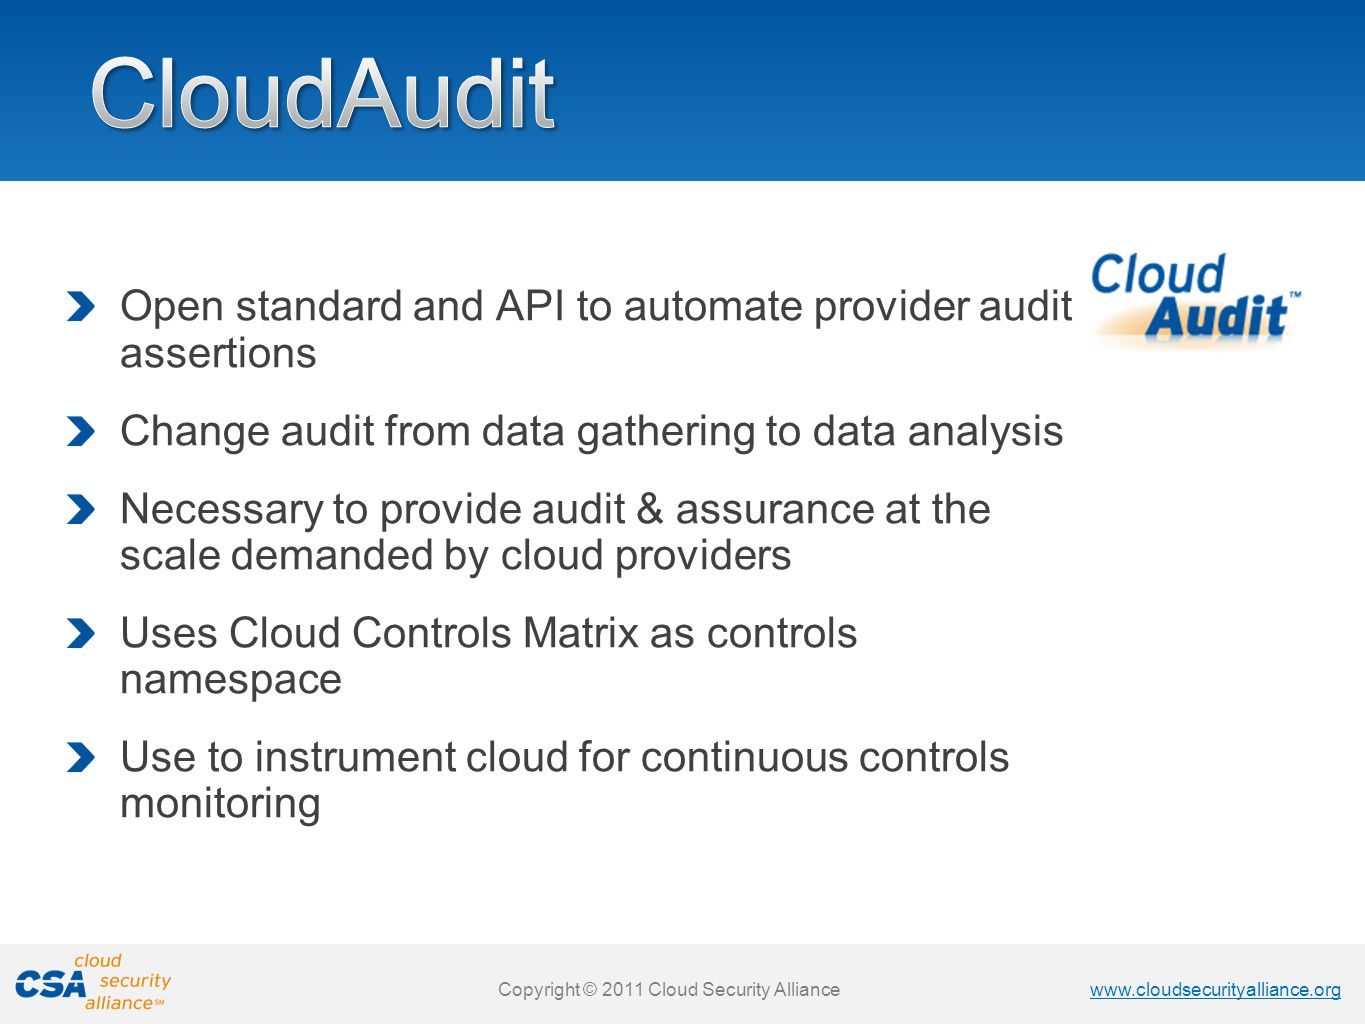 CloudAudit Open standard and API to automate provider audit assertions